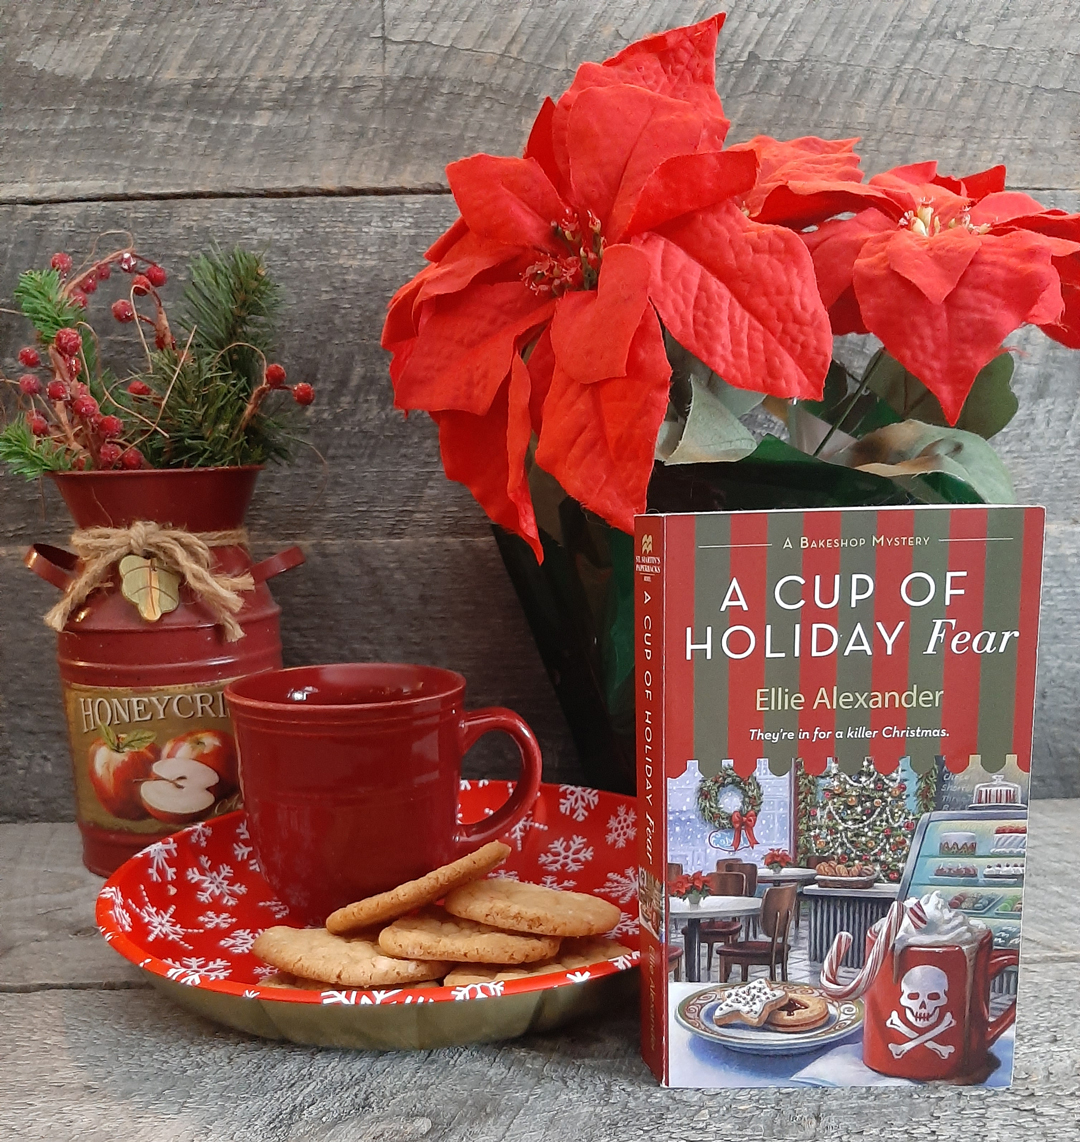 Ellie Alexander – A Cup of Holiday Fear